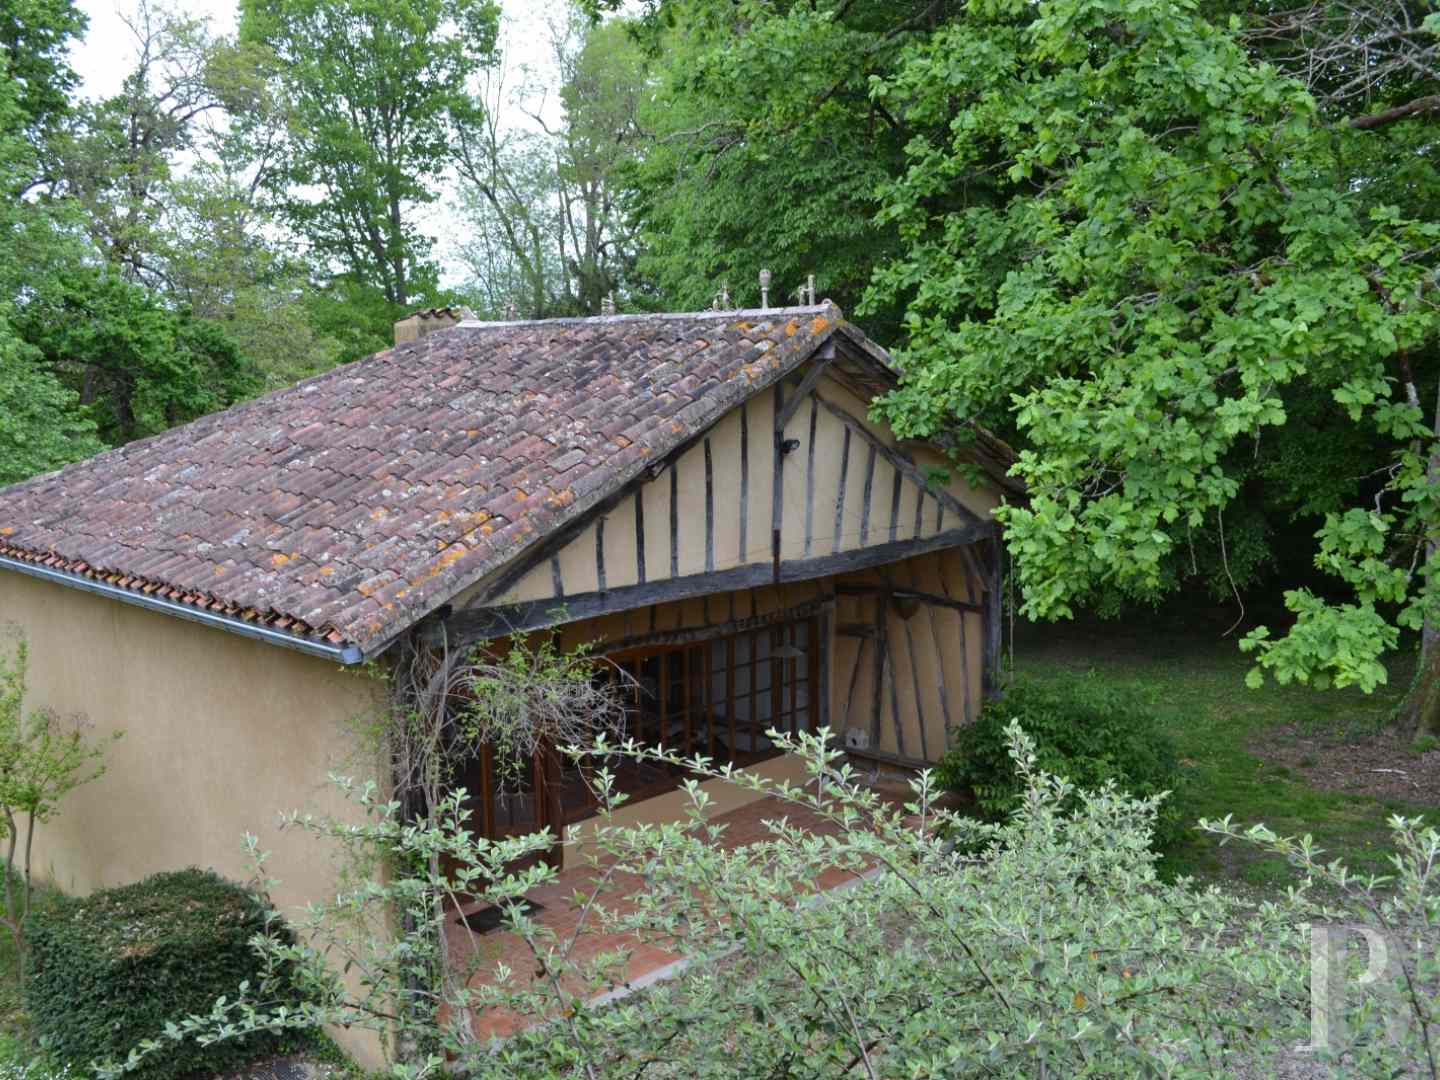 character properties France midi pyrenees character houses - 15 zoom